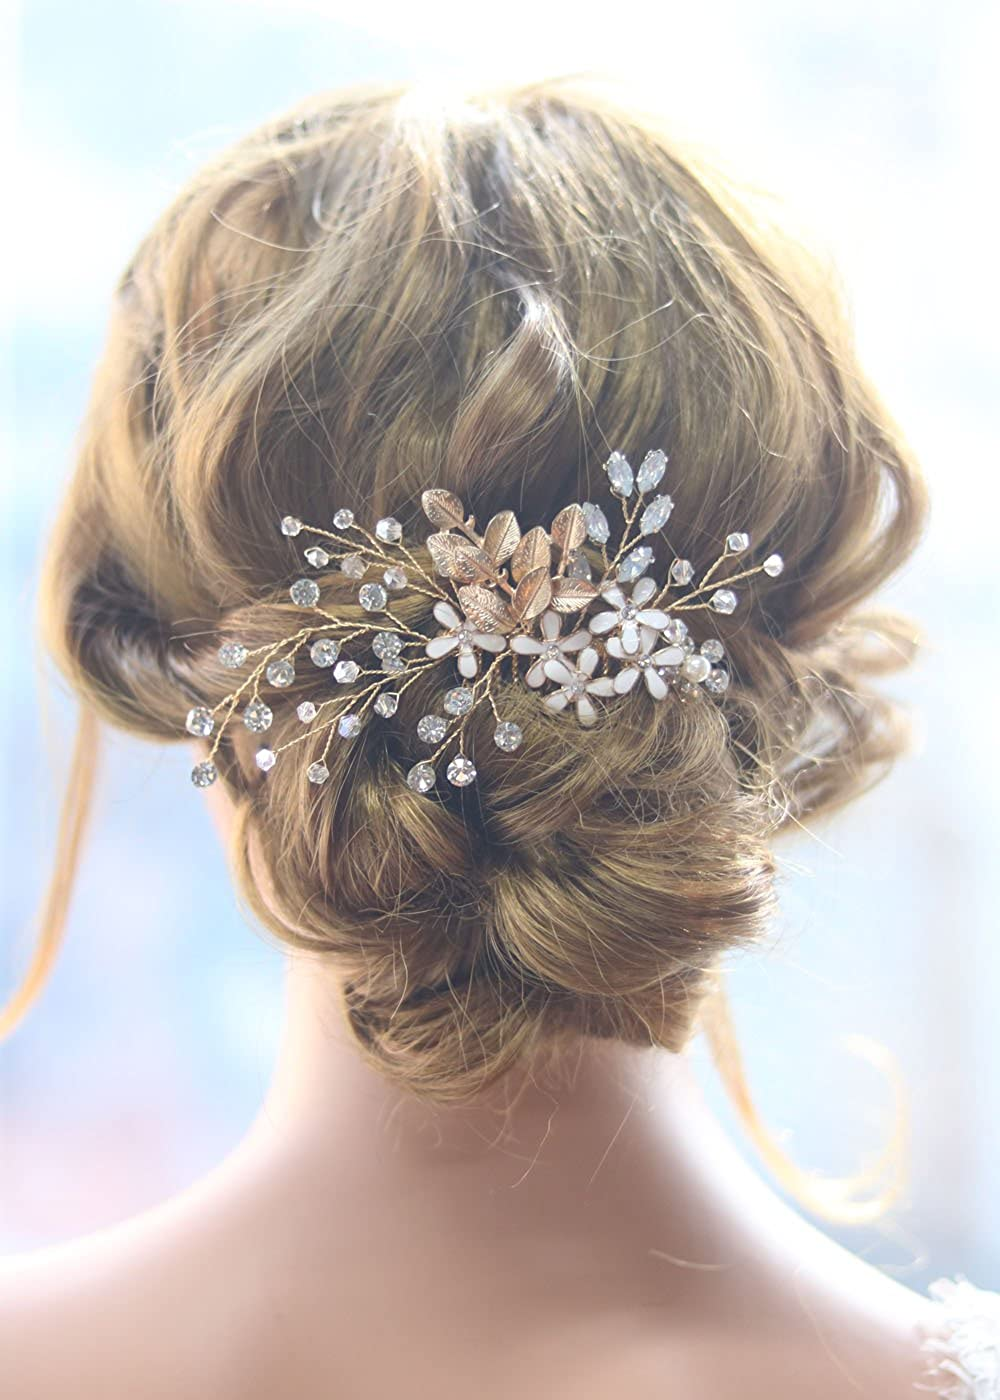 Missgrace Bridal Vintage Gold Leaves and Flower Crystal Hair Comb -Rhinestone Bridal Back Piece Wedding Hair Accessories for for Festival and Party- Bridal Hair Accessories for Bride